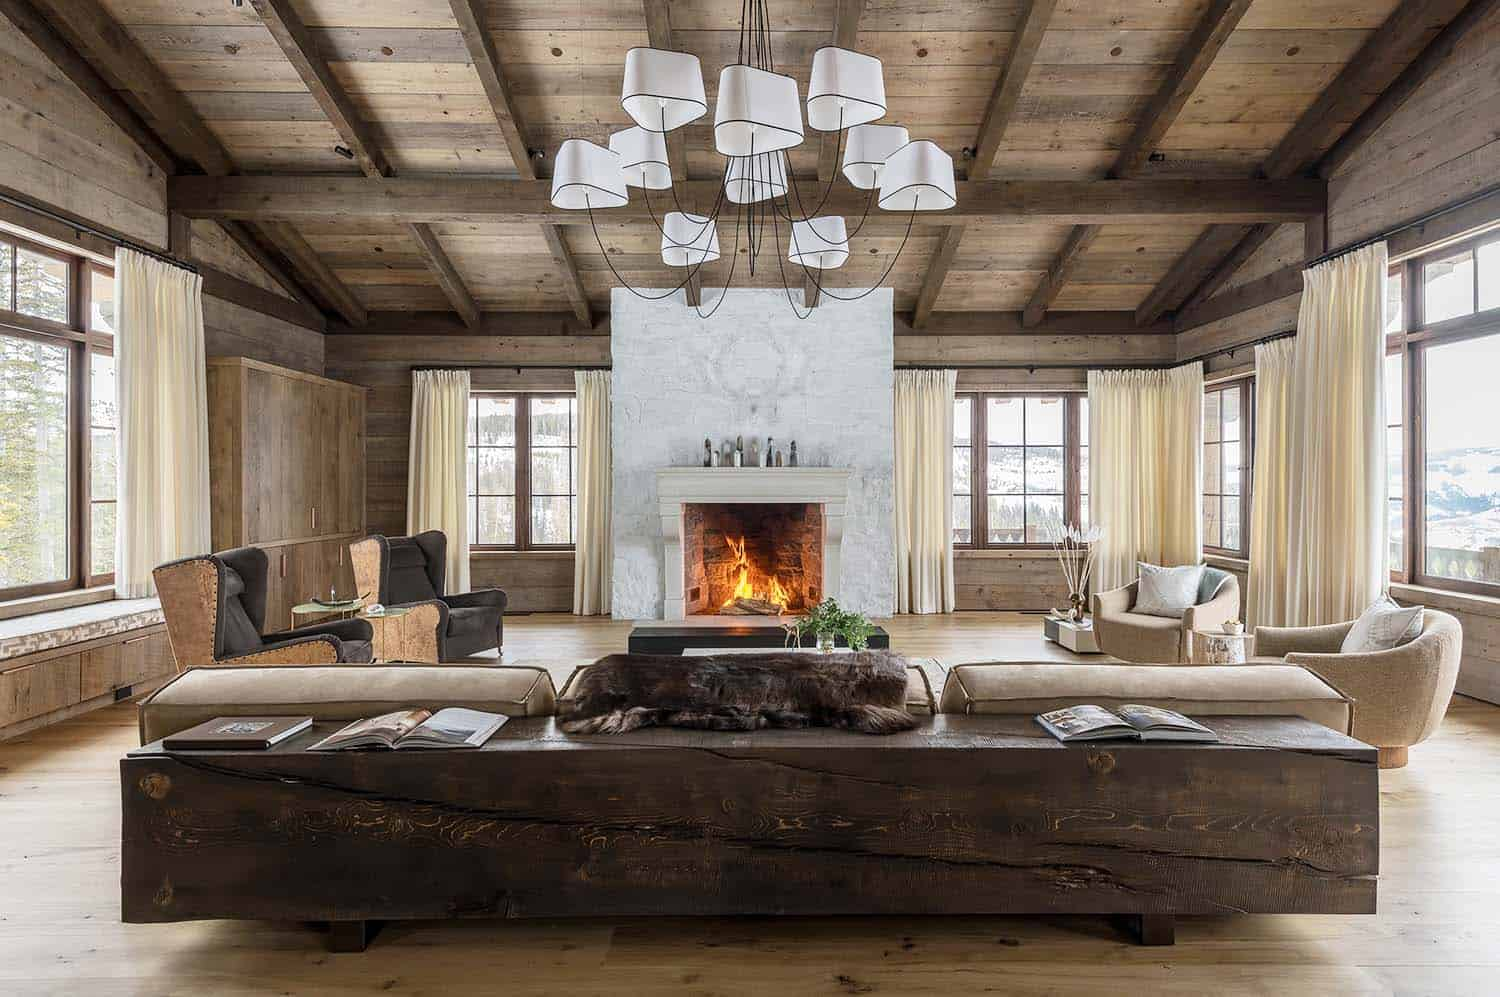 Ski Chalet Interior Design swiss chalet-inspired home provides cozy refuge in snowy montana